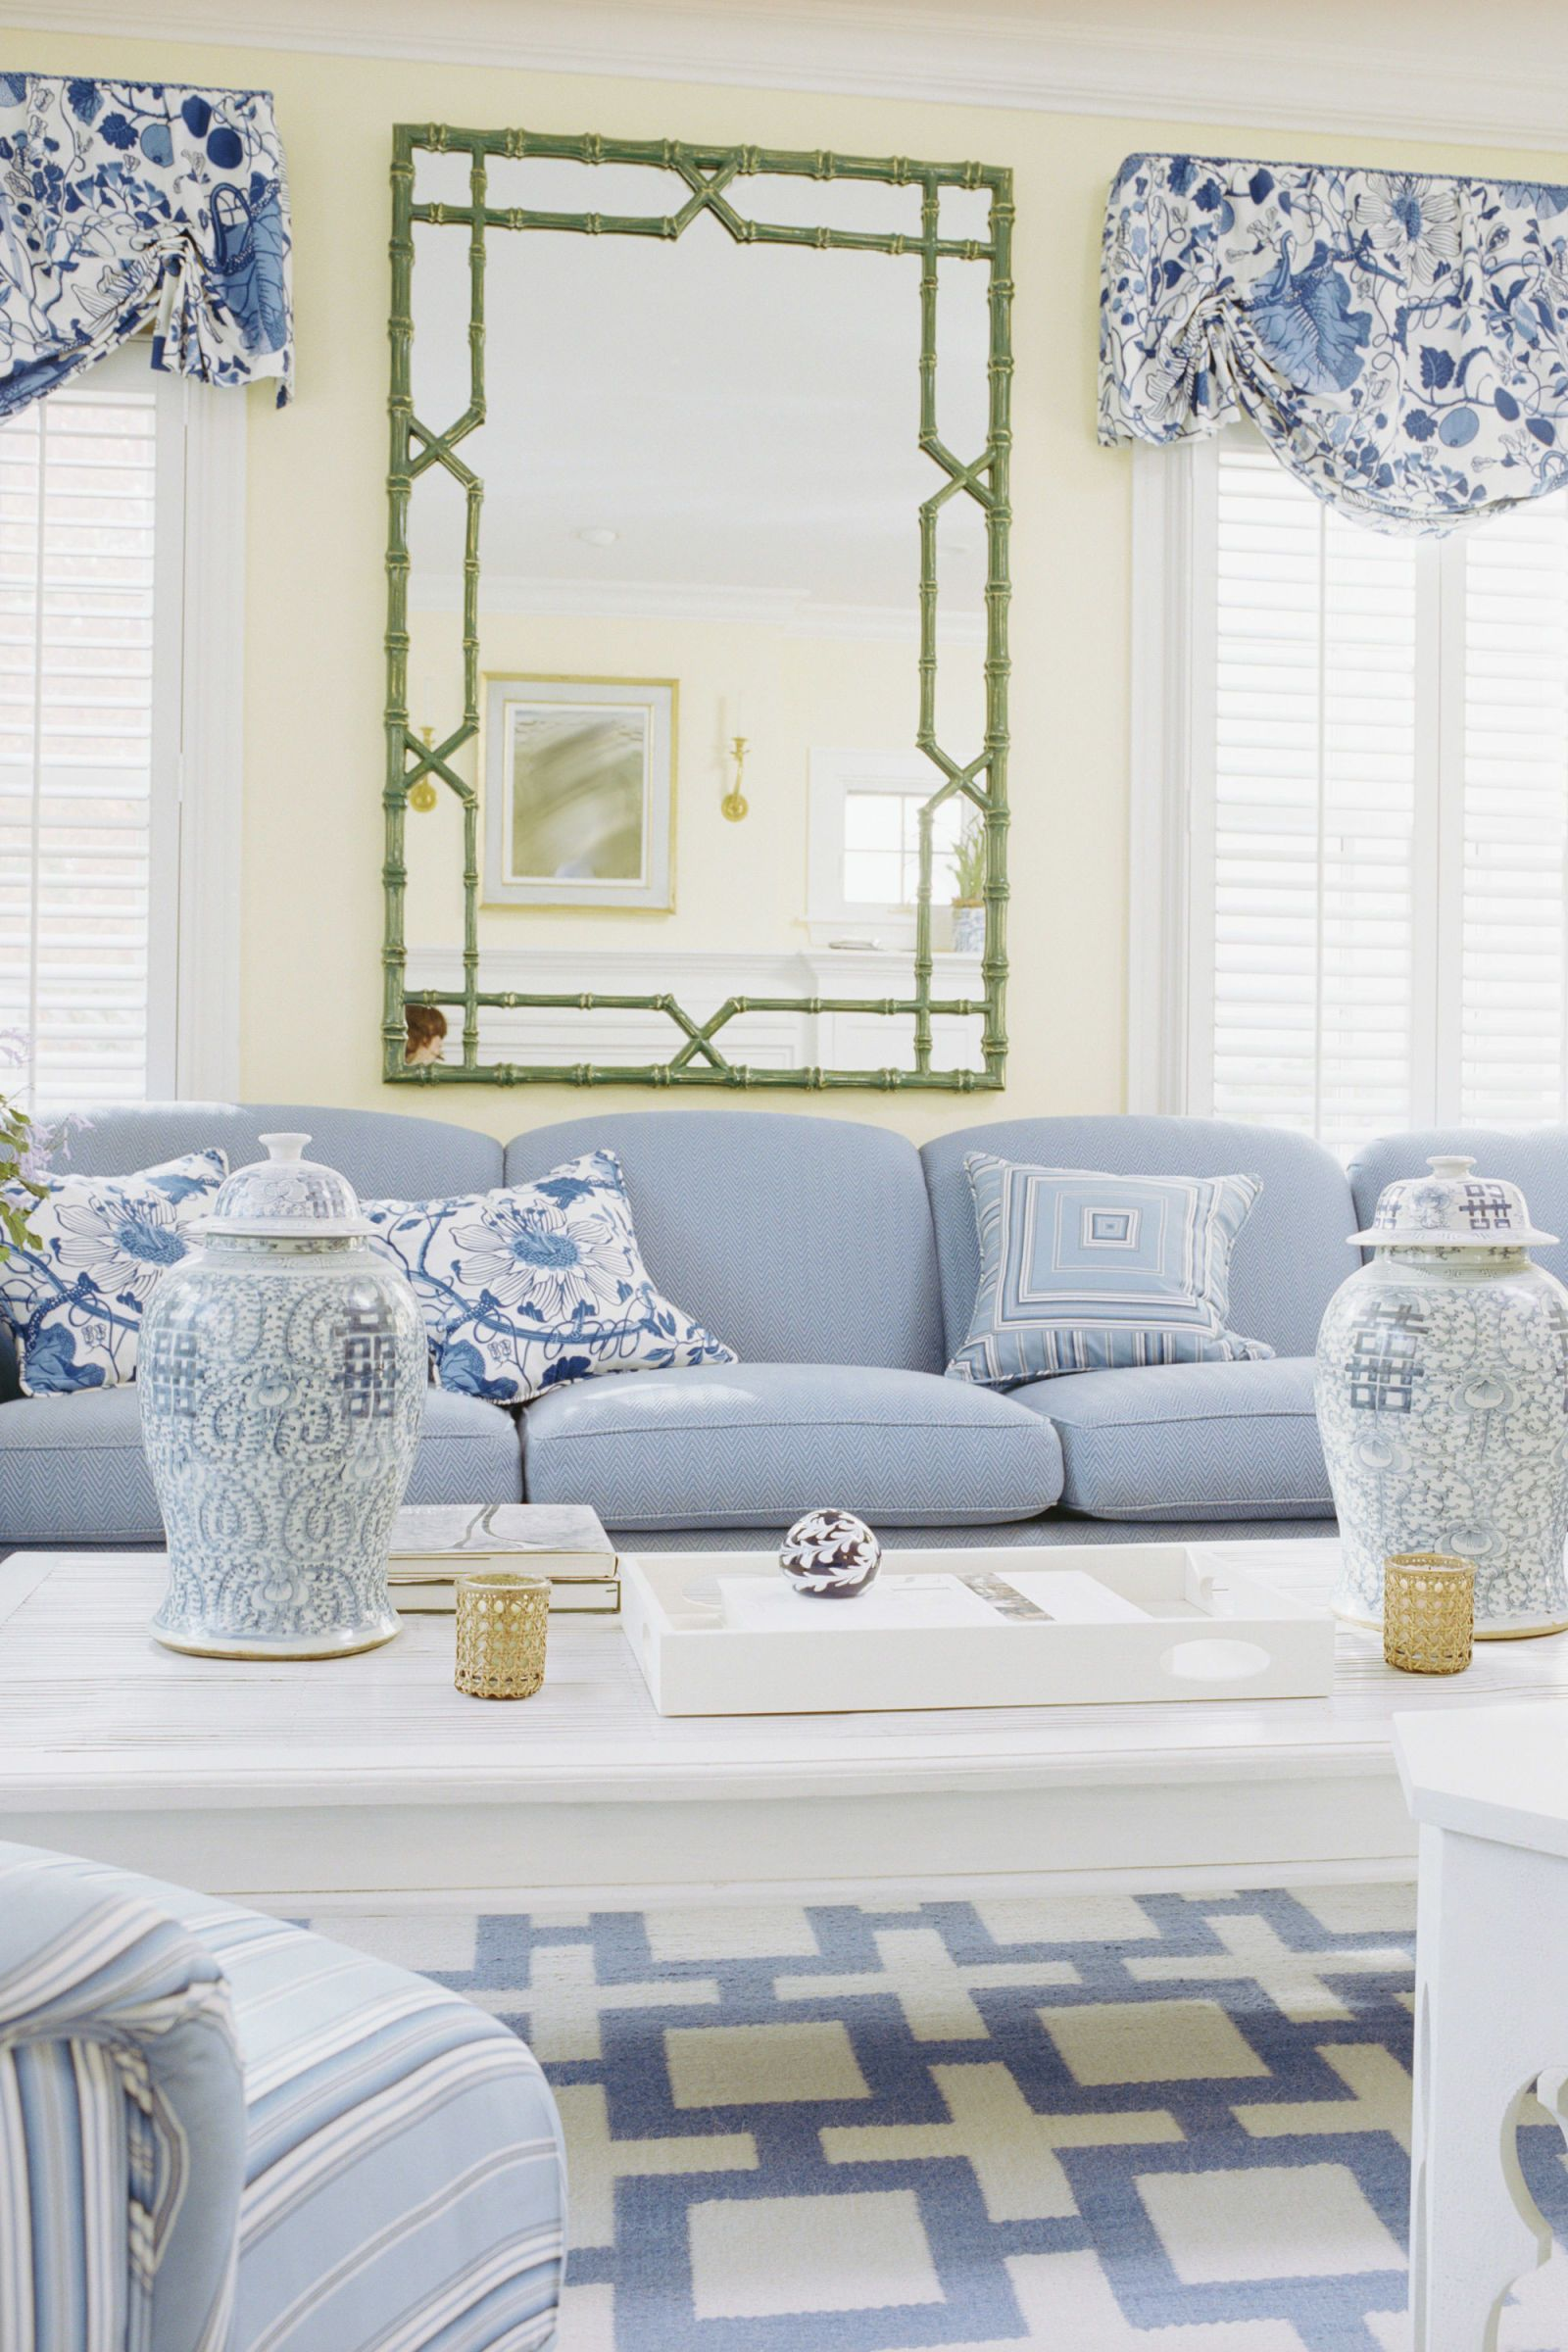 Best 23 Reasons Why Blue And White Is The Most Classic Color Combination Living Room Decor Country 400 x 300